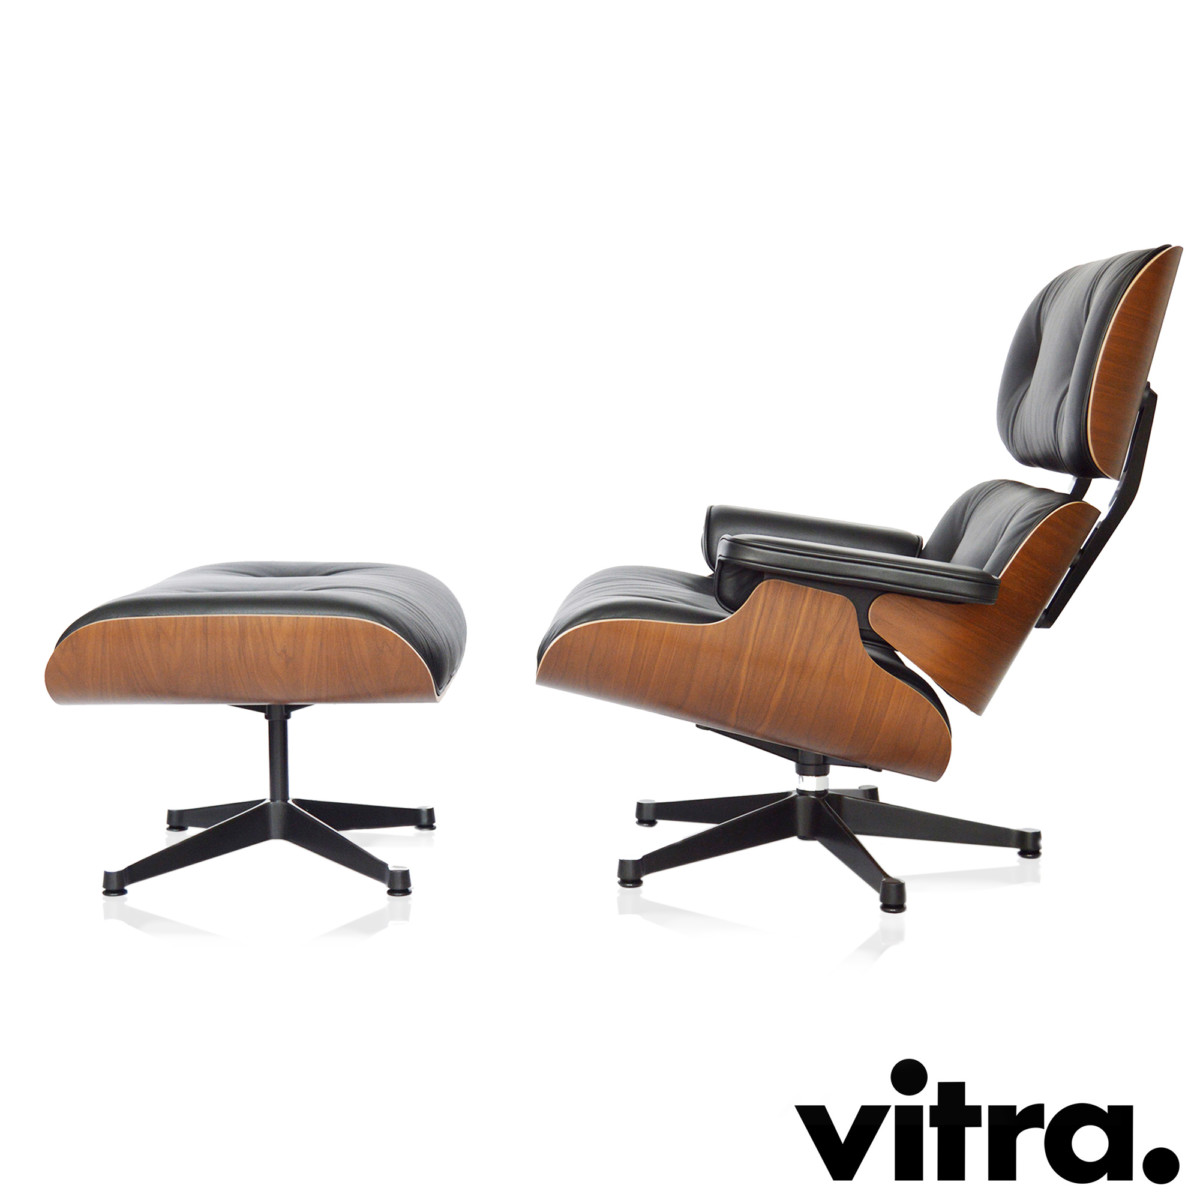 vitra eames lounge chair im design sortiment von midmodern. Black Bedroom Furniture Sets. Home Design Ideas